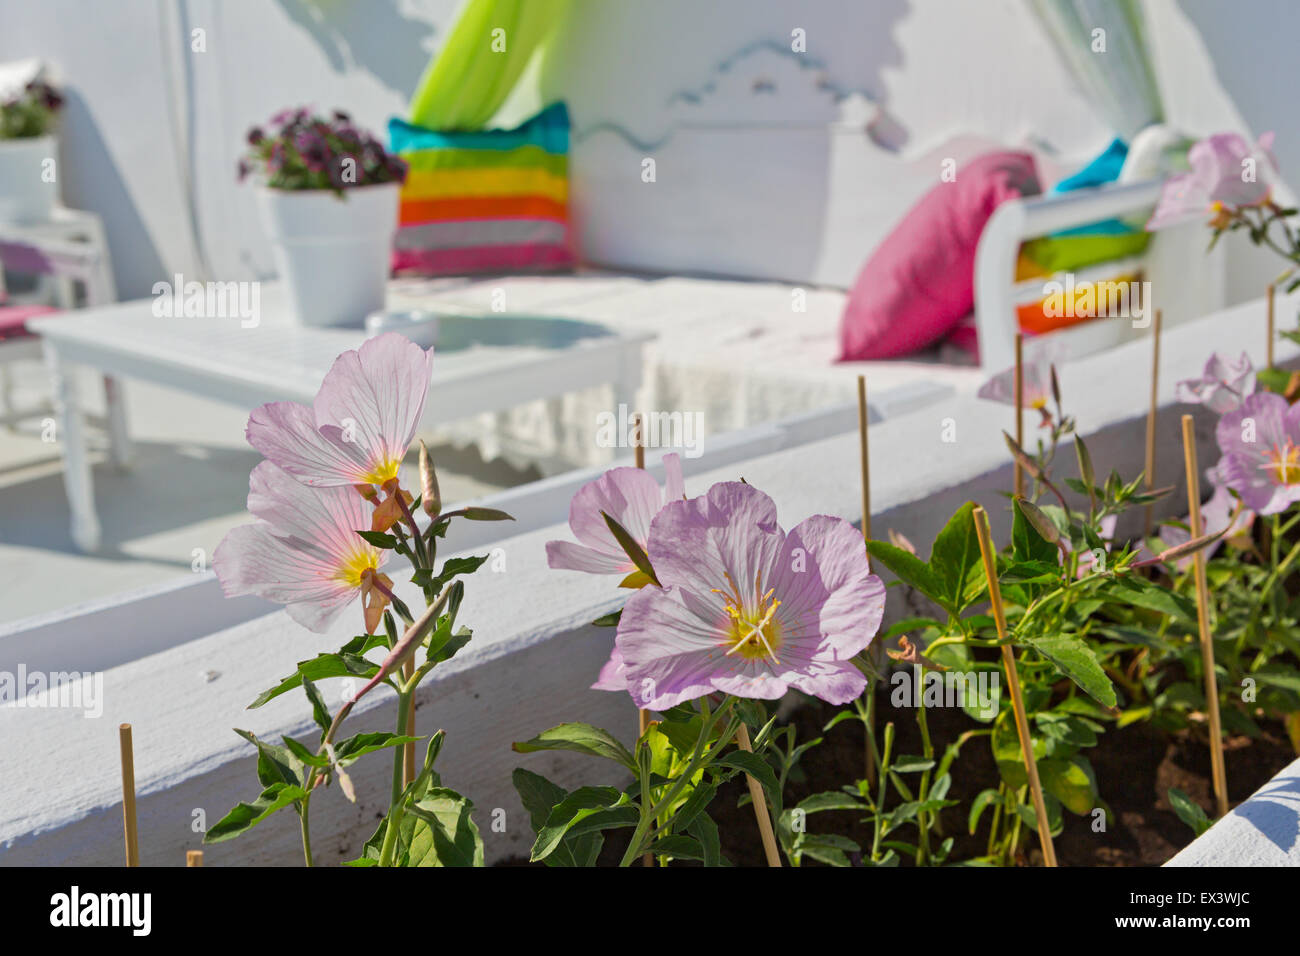 Cozy table and a sofa in cafe, focus on flowers - Stock Image